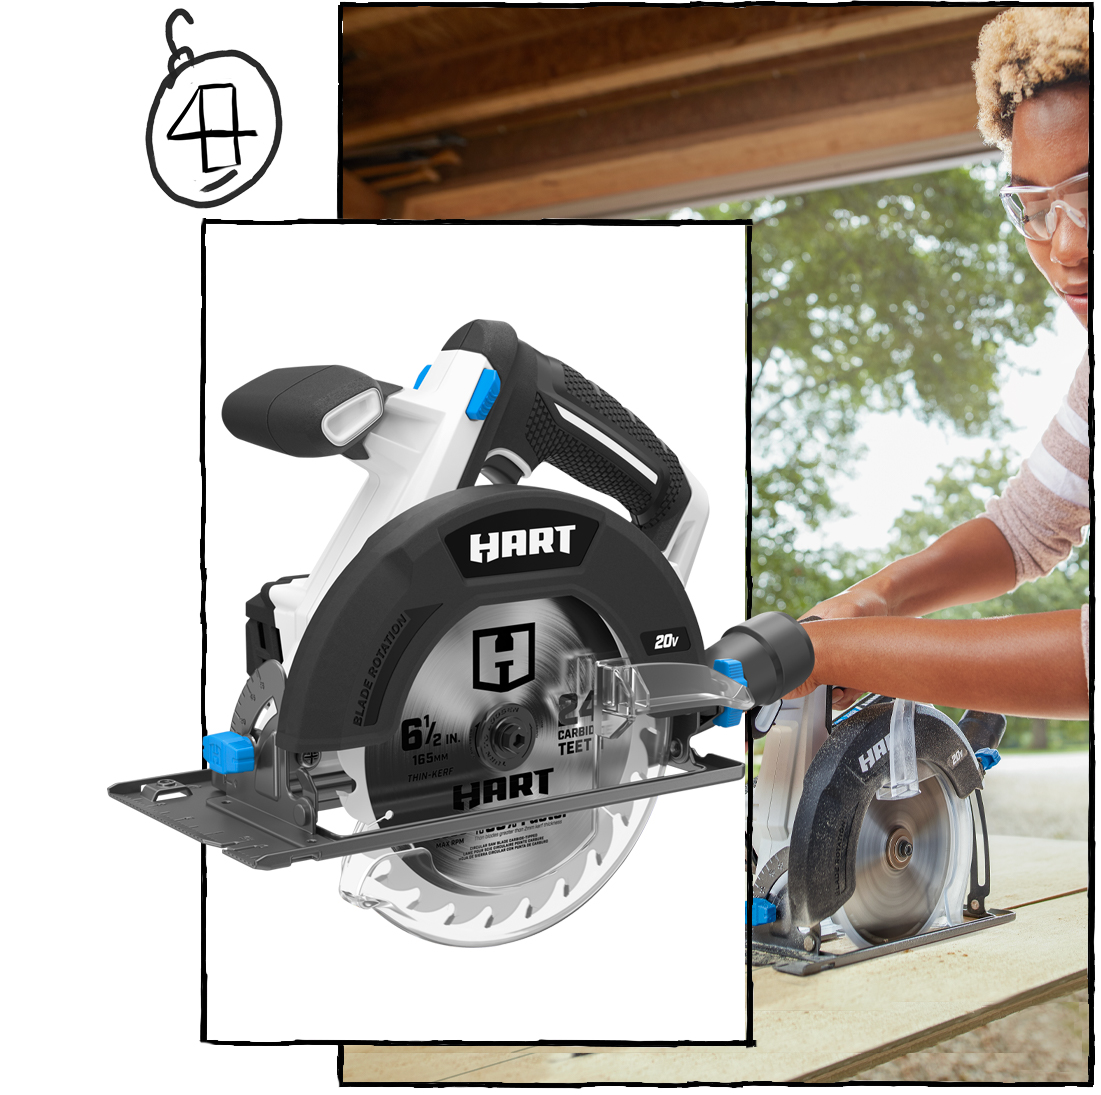 "The Endless Woodworking Opportunities 6-1/2"" Circular Saw Kit ($99)"